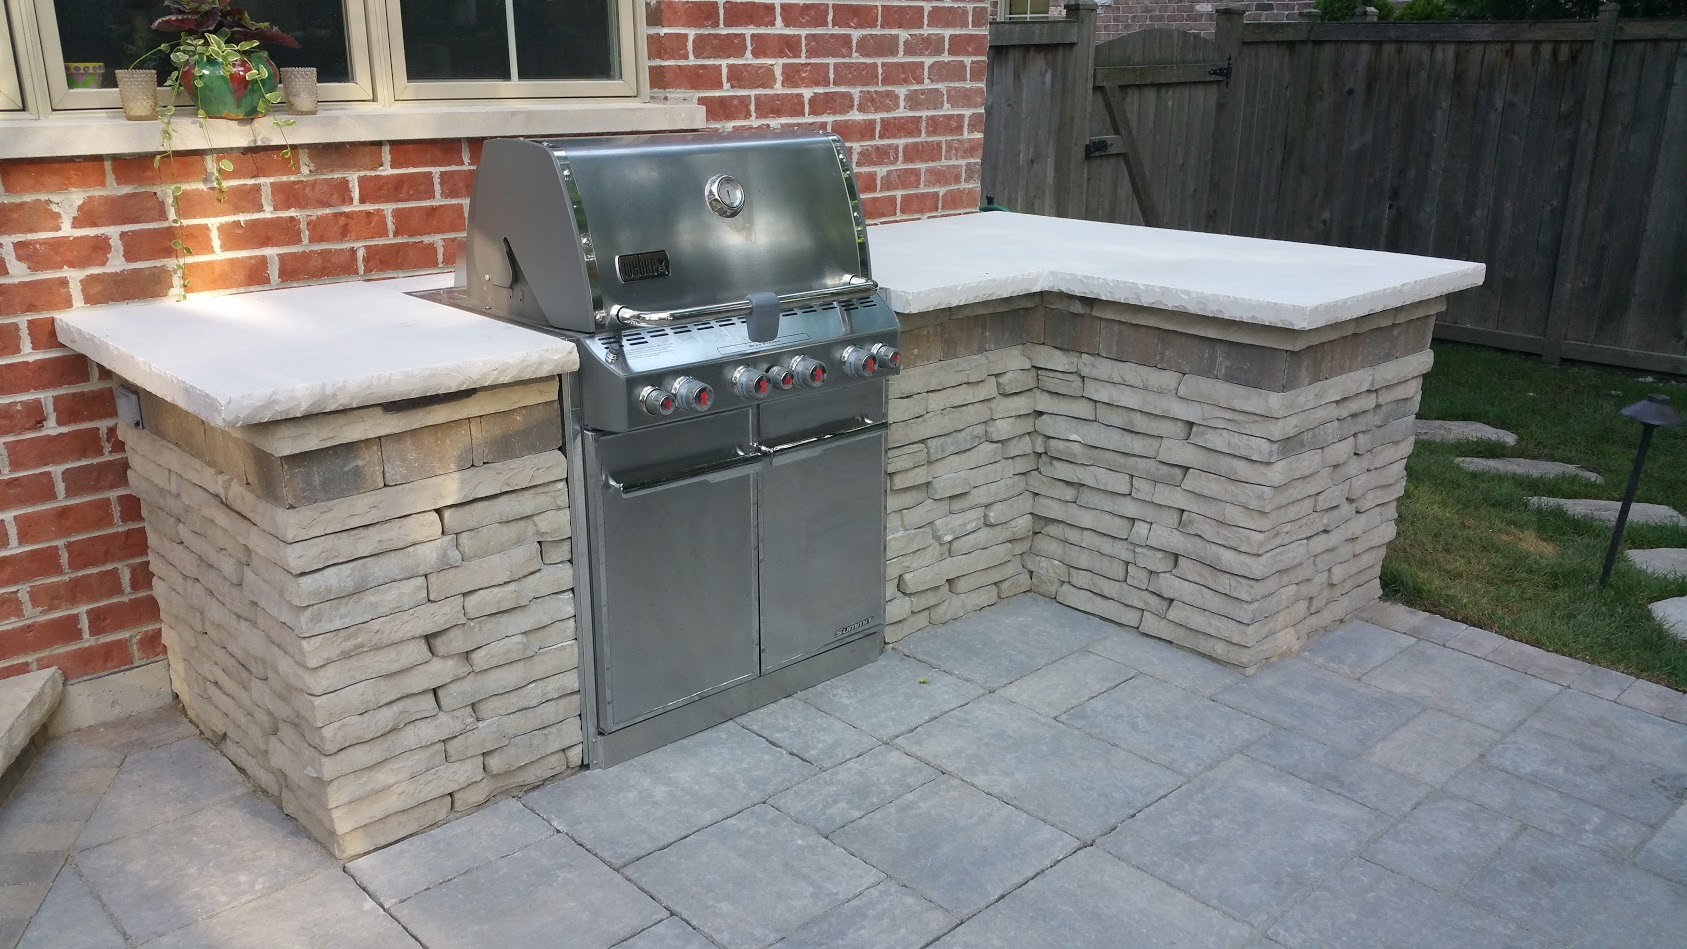 Outdoor kitchen landscape design by Unilock contractor in Glenview, IL